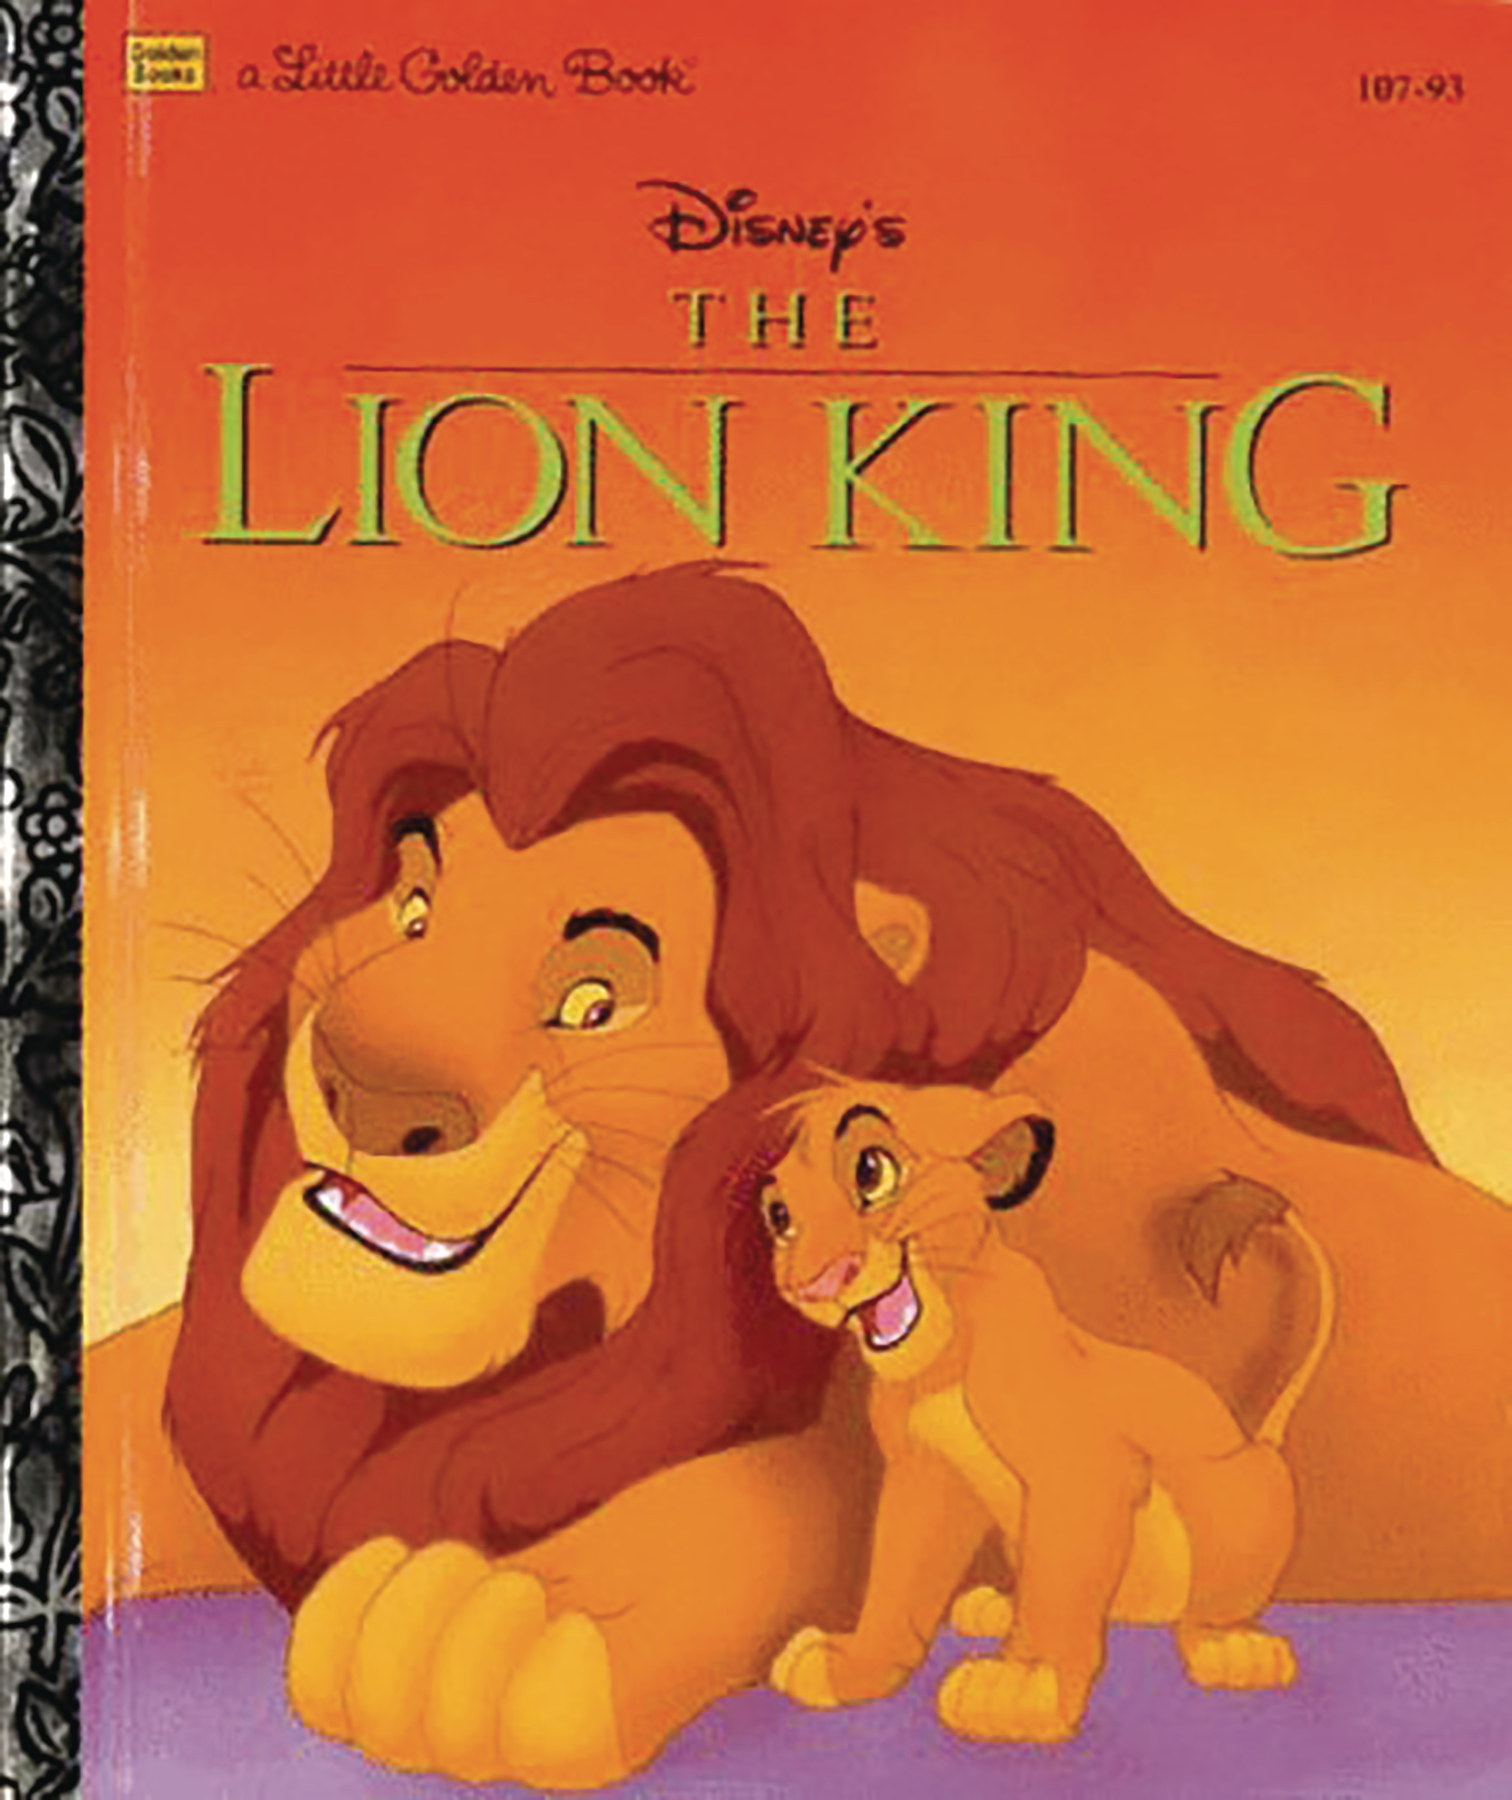 DISNEY LION KING BIG GOLDEN BOOK